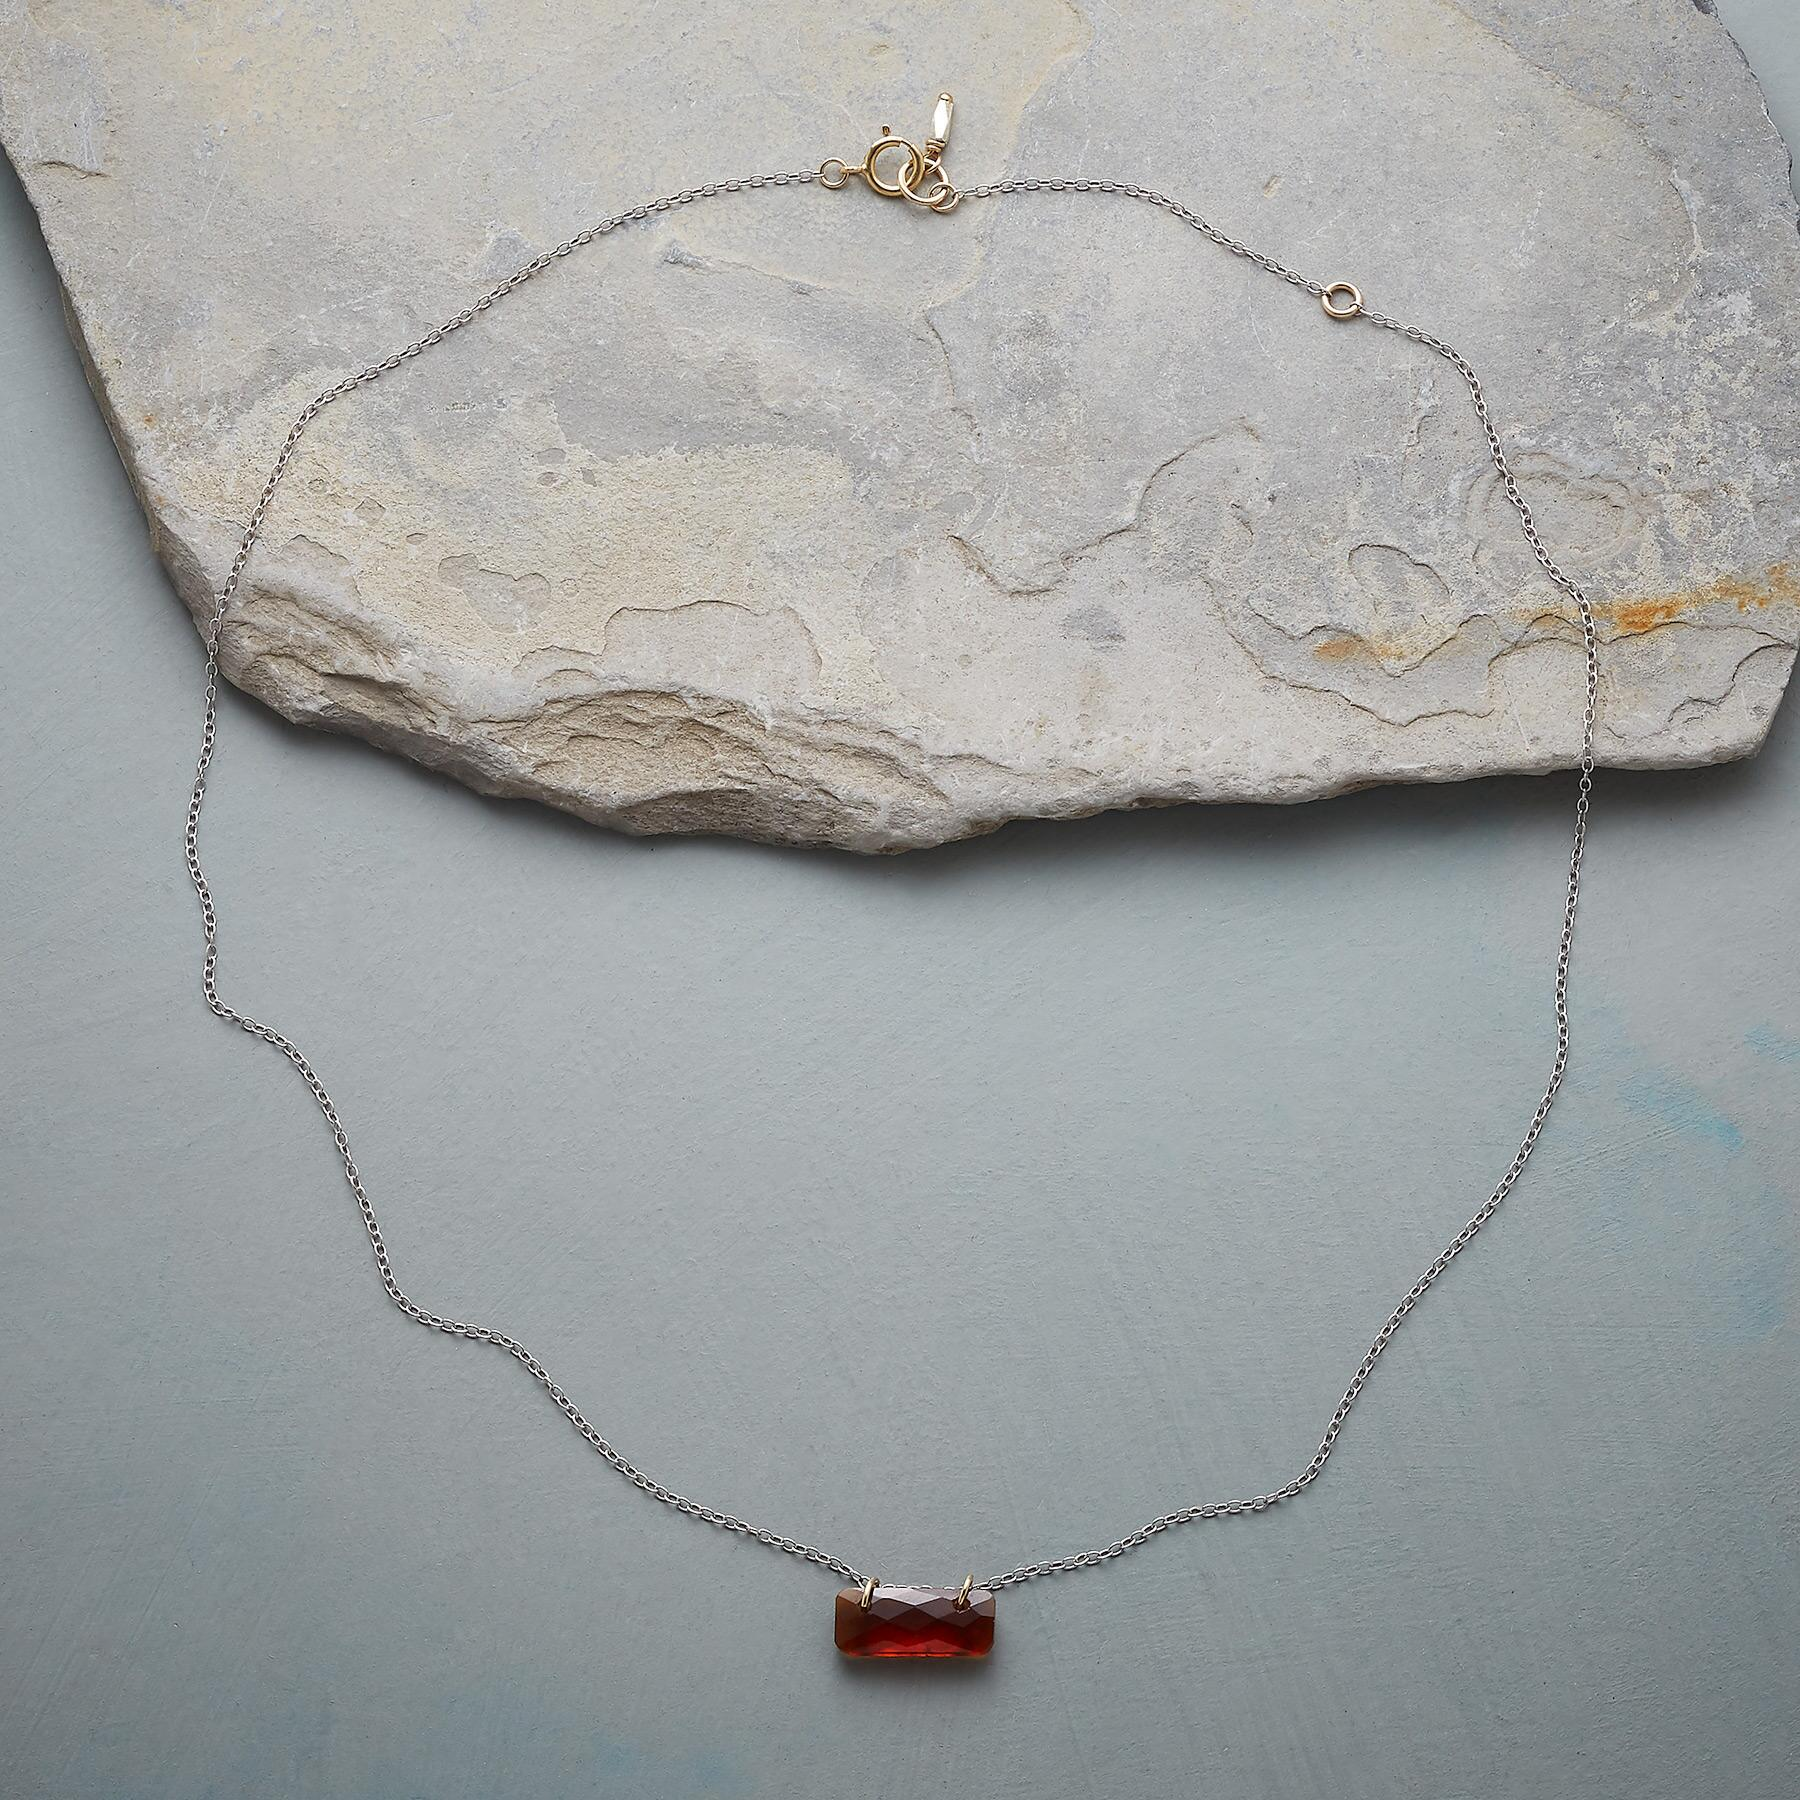 BIRTHSTONE TILE NECKLACE: View 2